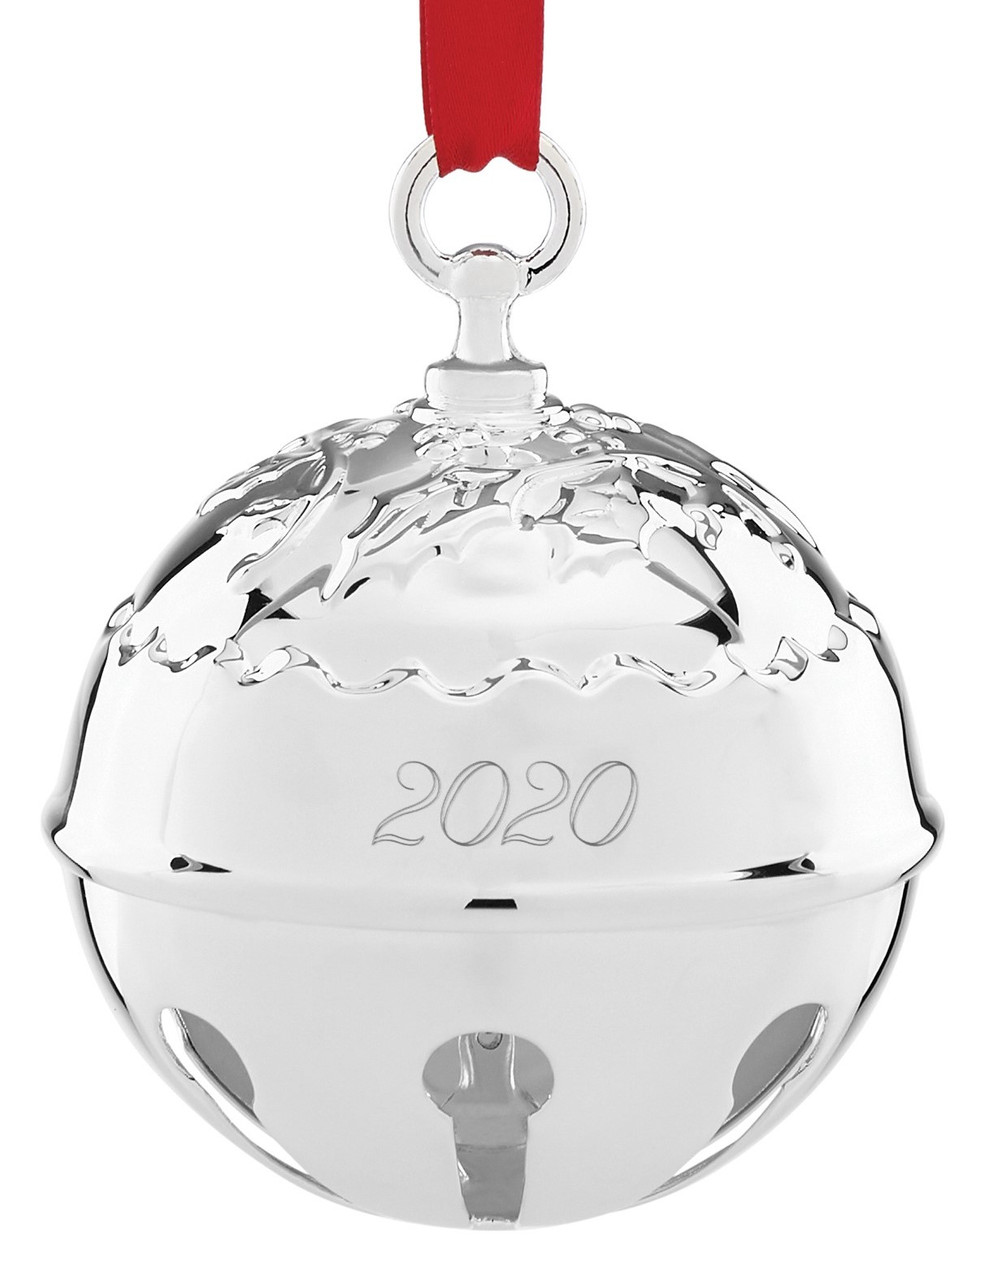 Reed And Barton Christmas Cross 2020 Thurbers Reed & Barton Annual Holly Bell Ornament 2020   Thurbers of Richmond